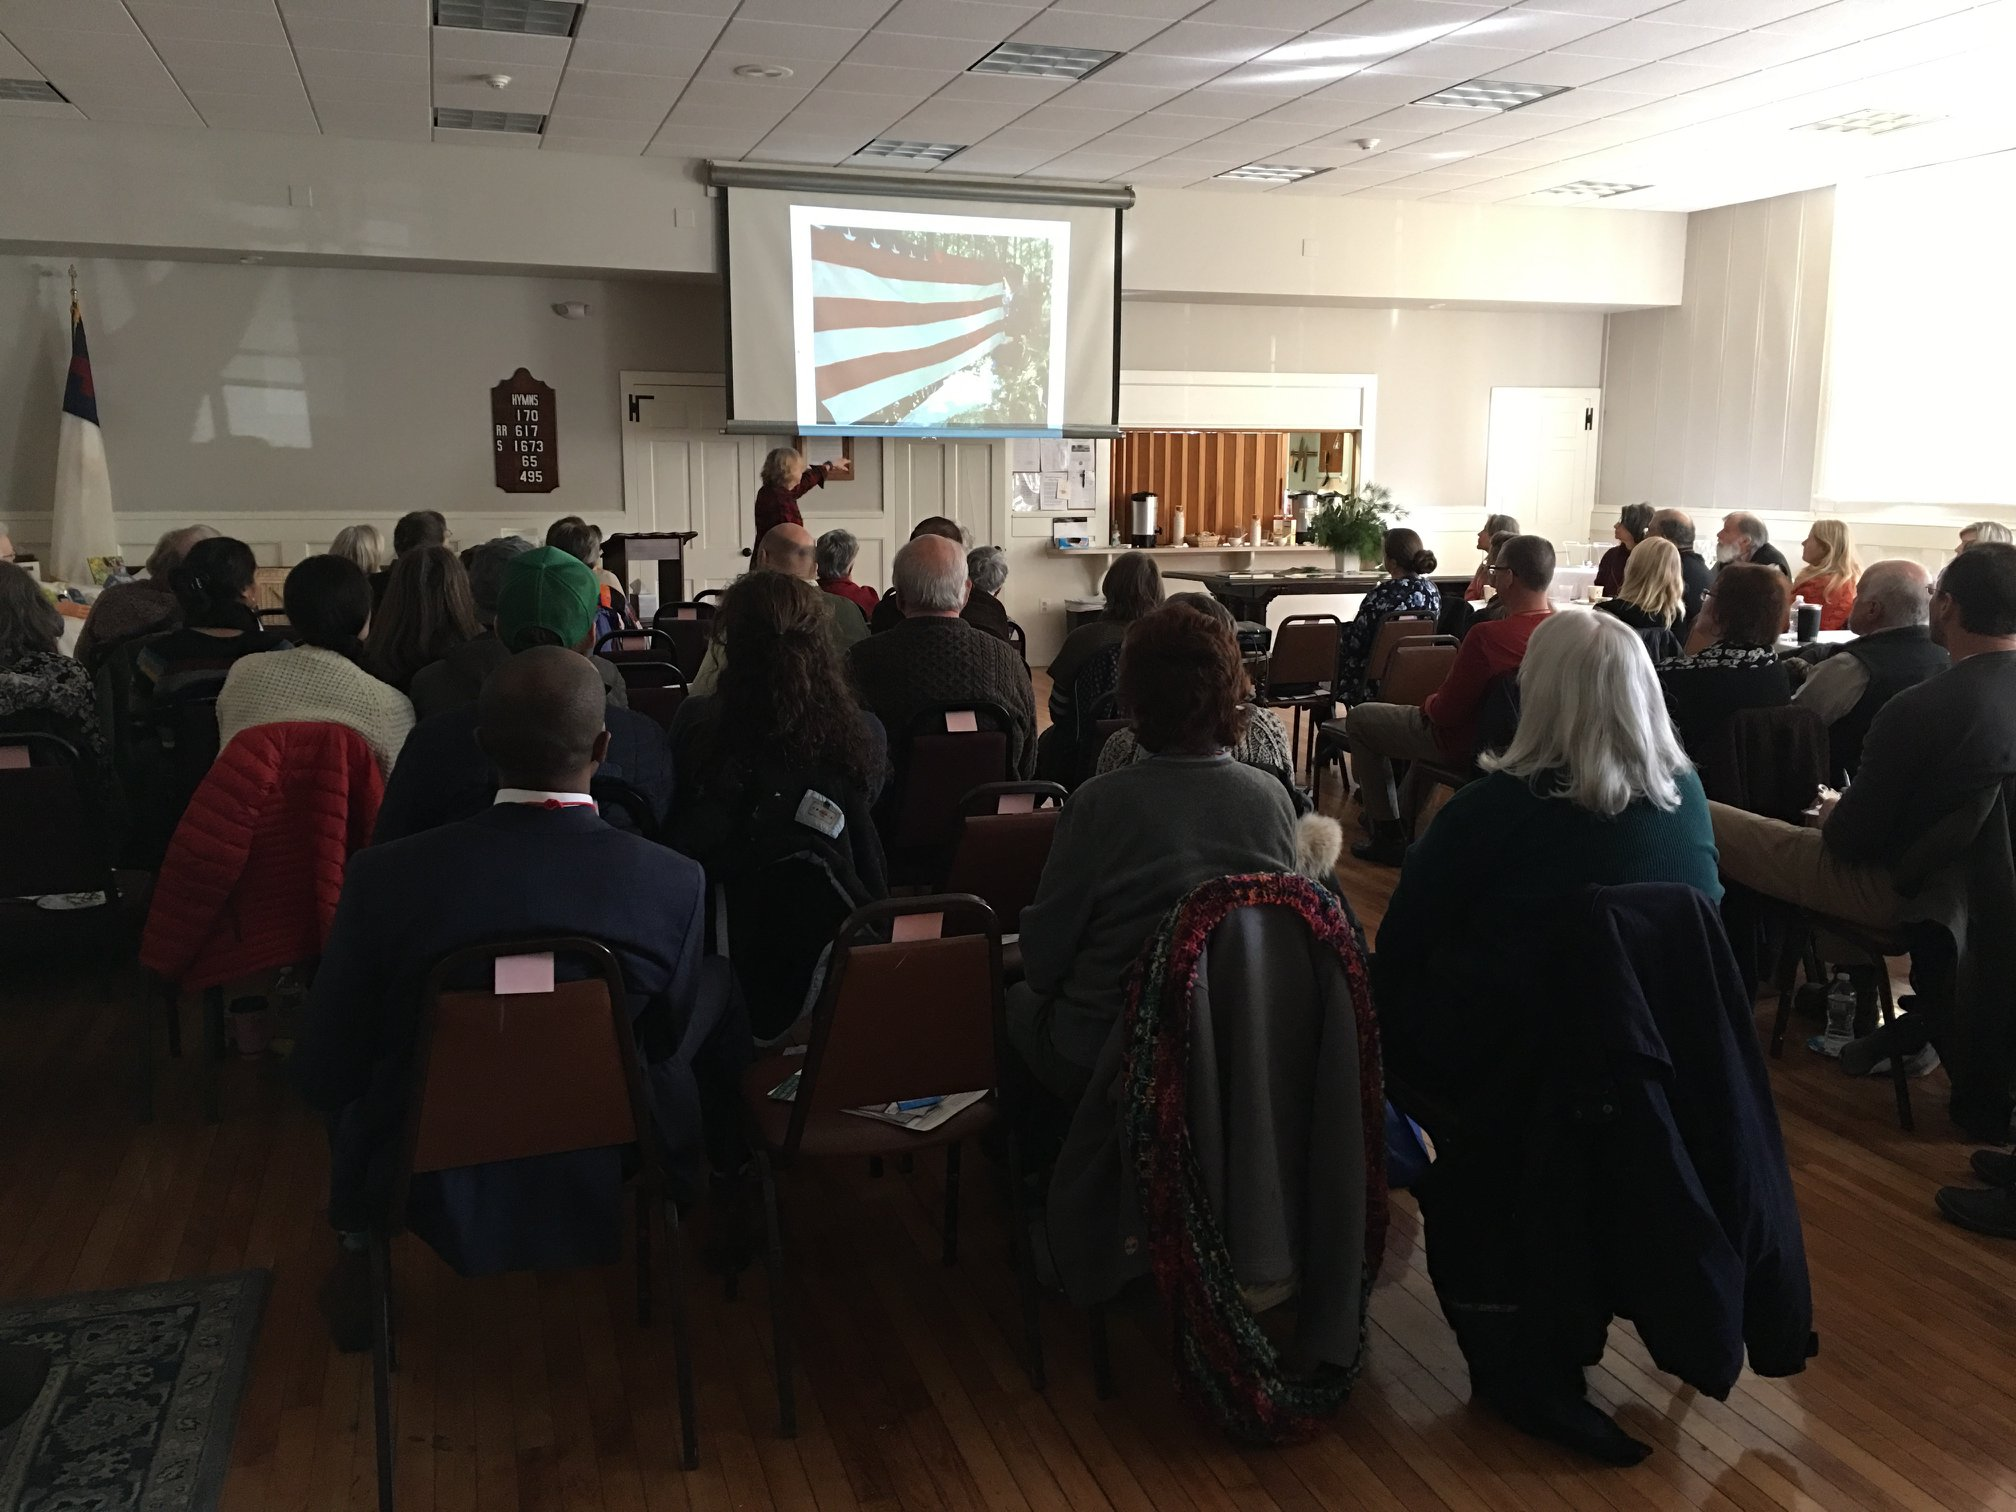 Author Ann Hoffner speaks at the Natural Burial Symposium hosted by SEMPBA on February 8, 2018.